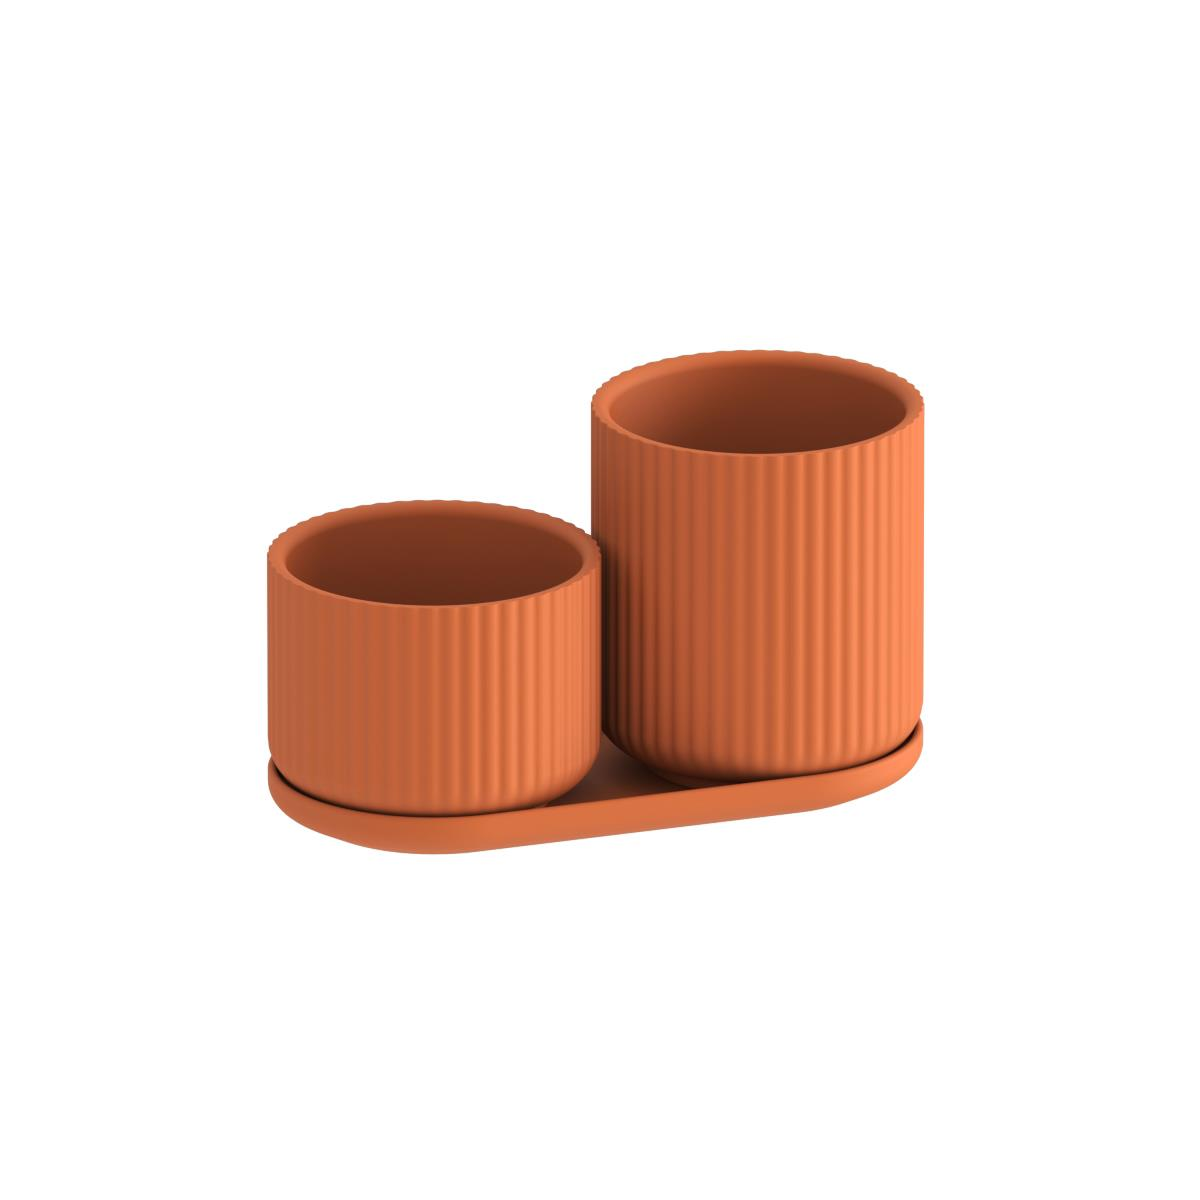 Klorofyll Set 01 with Pot 100 & 150 with Tray - Terracotta